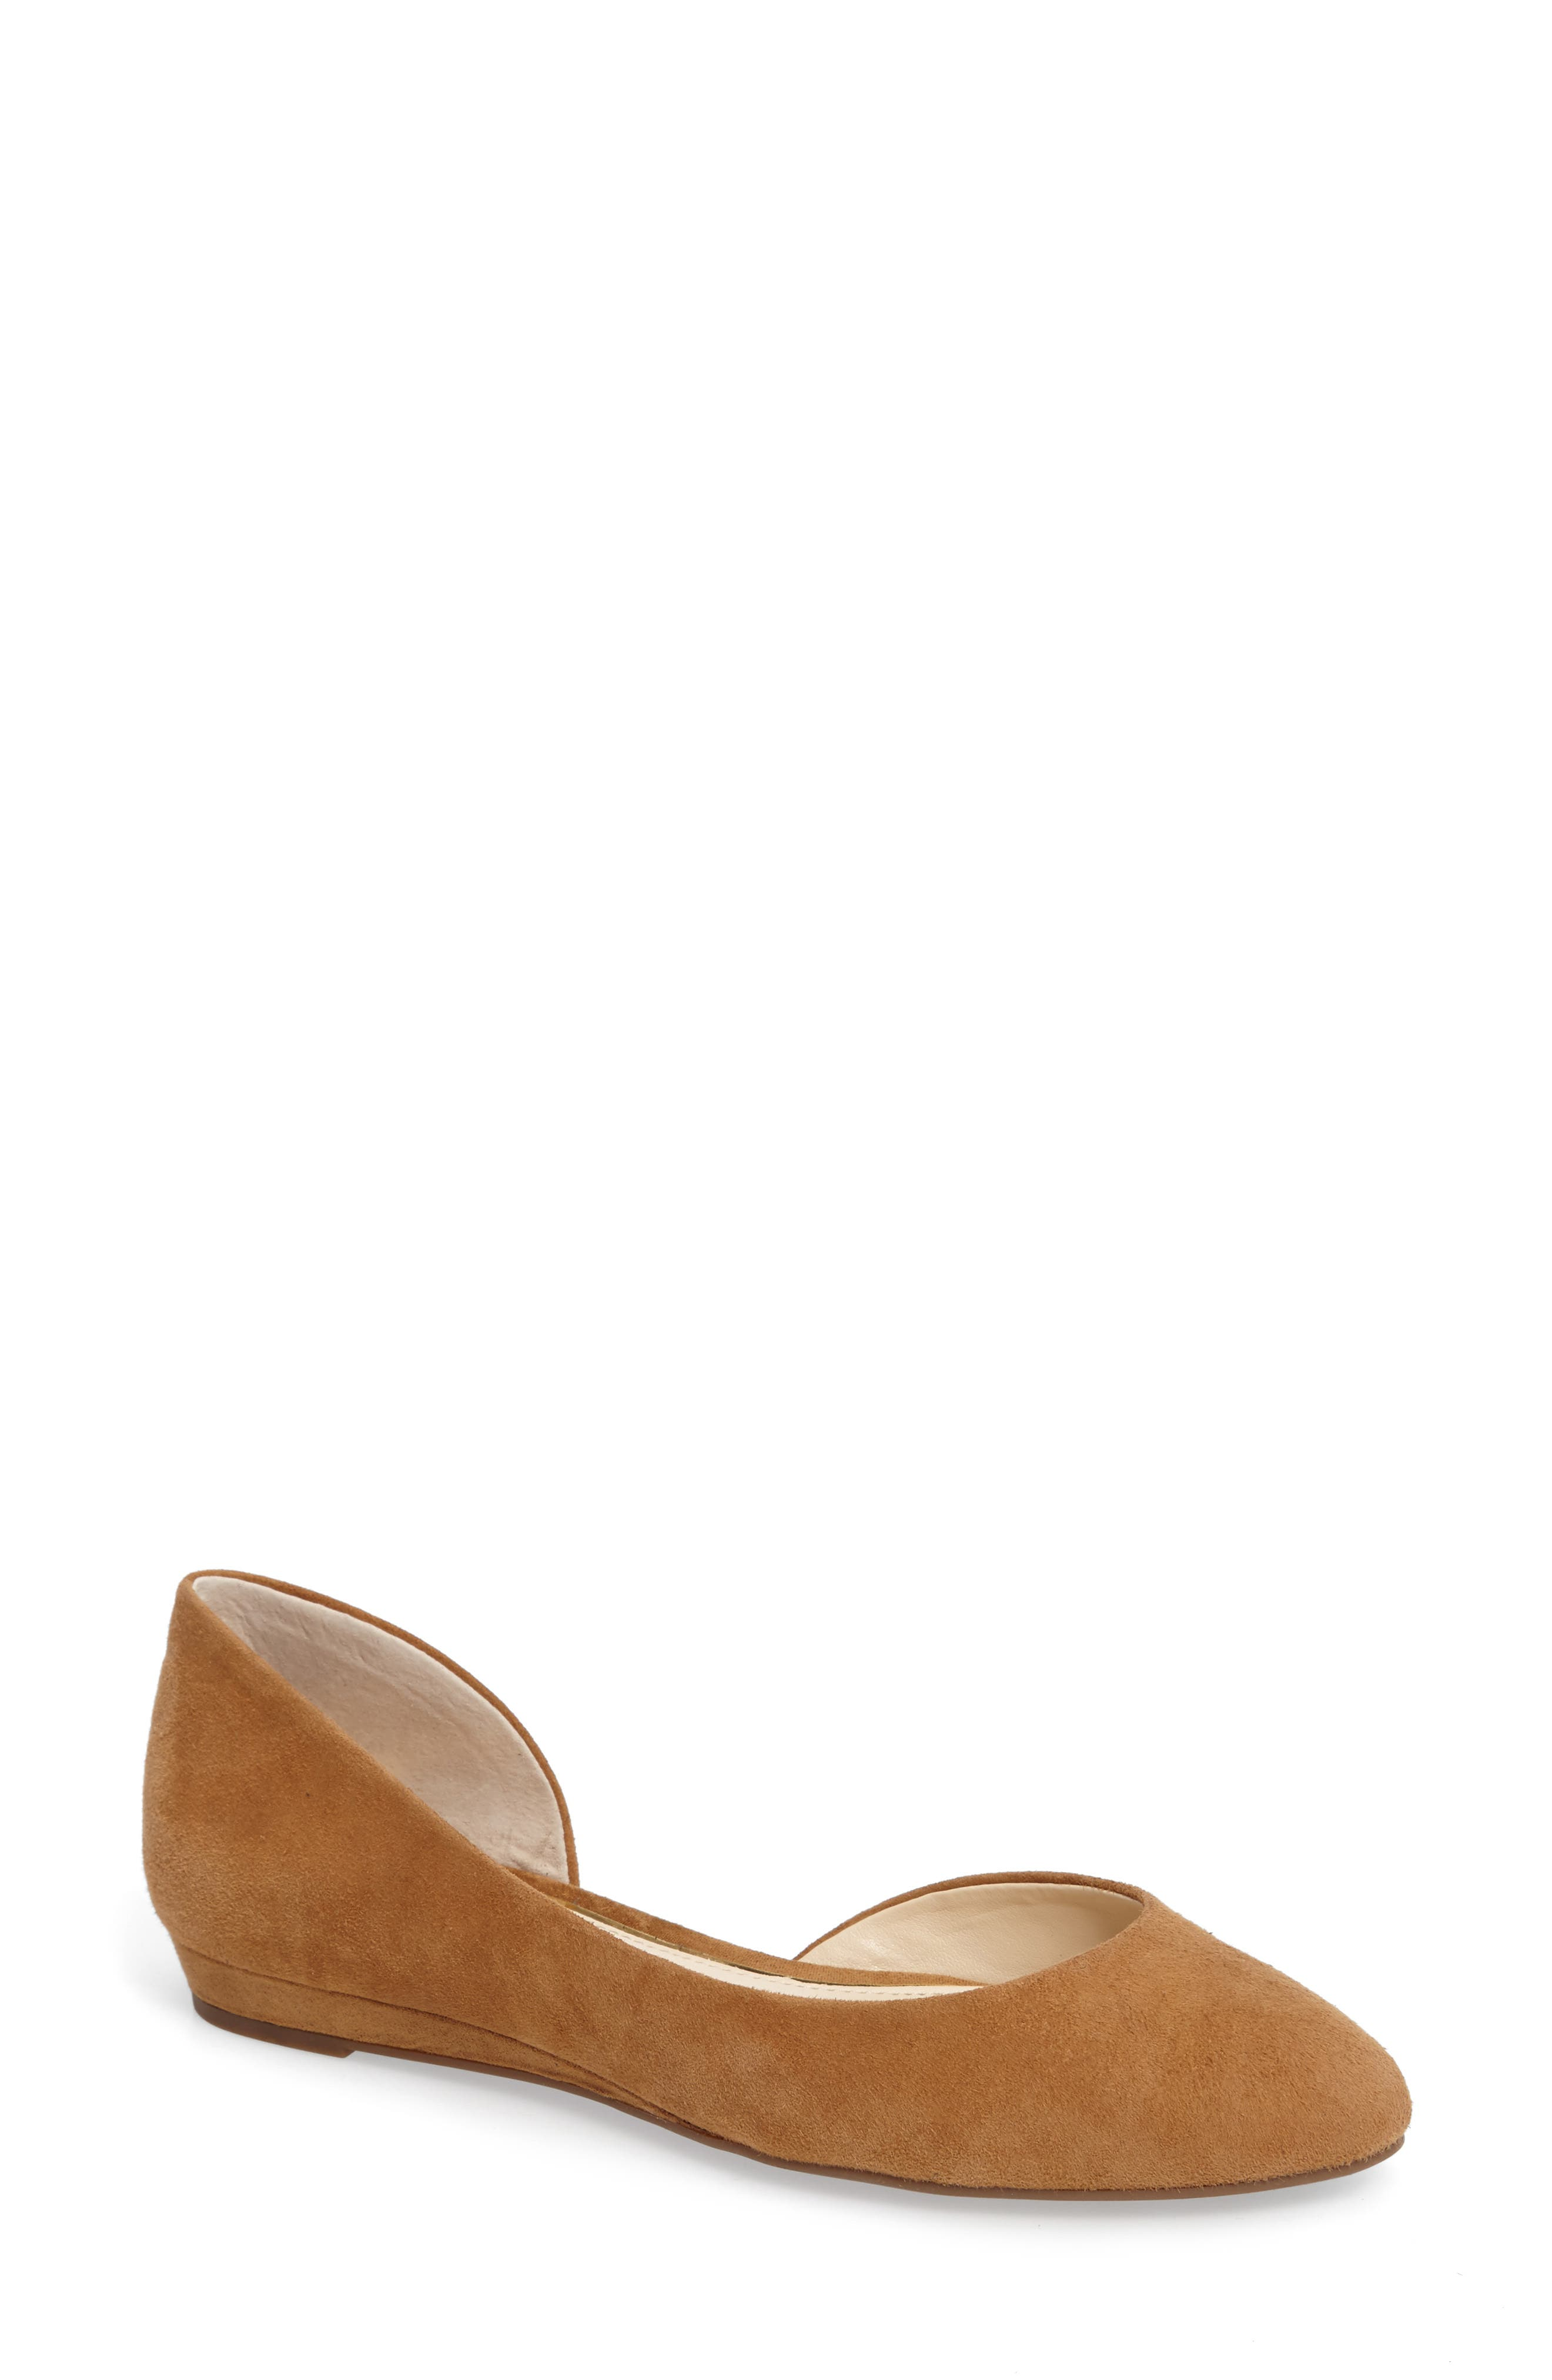 Alternate Image 1 Selected - Jessica Simpson Lynsey d'Orsay Flat (Women)